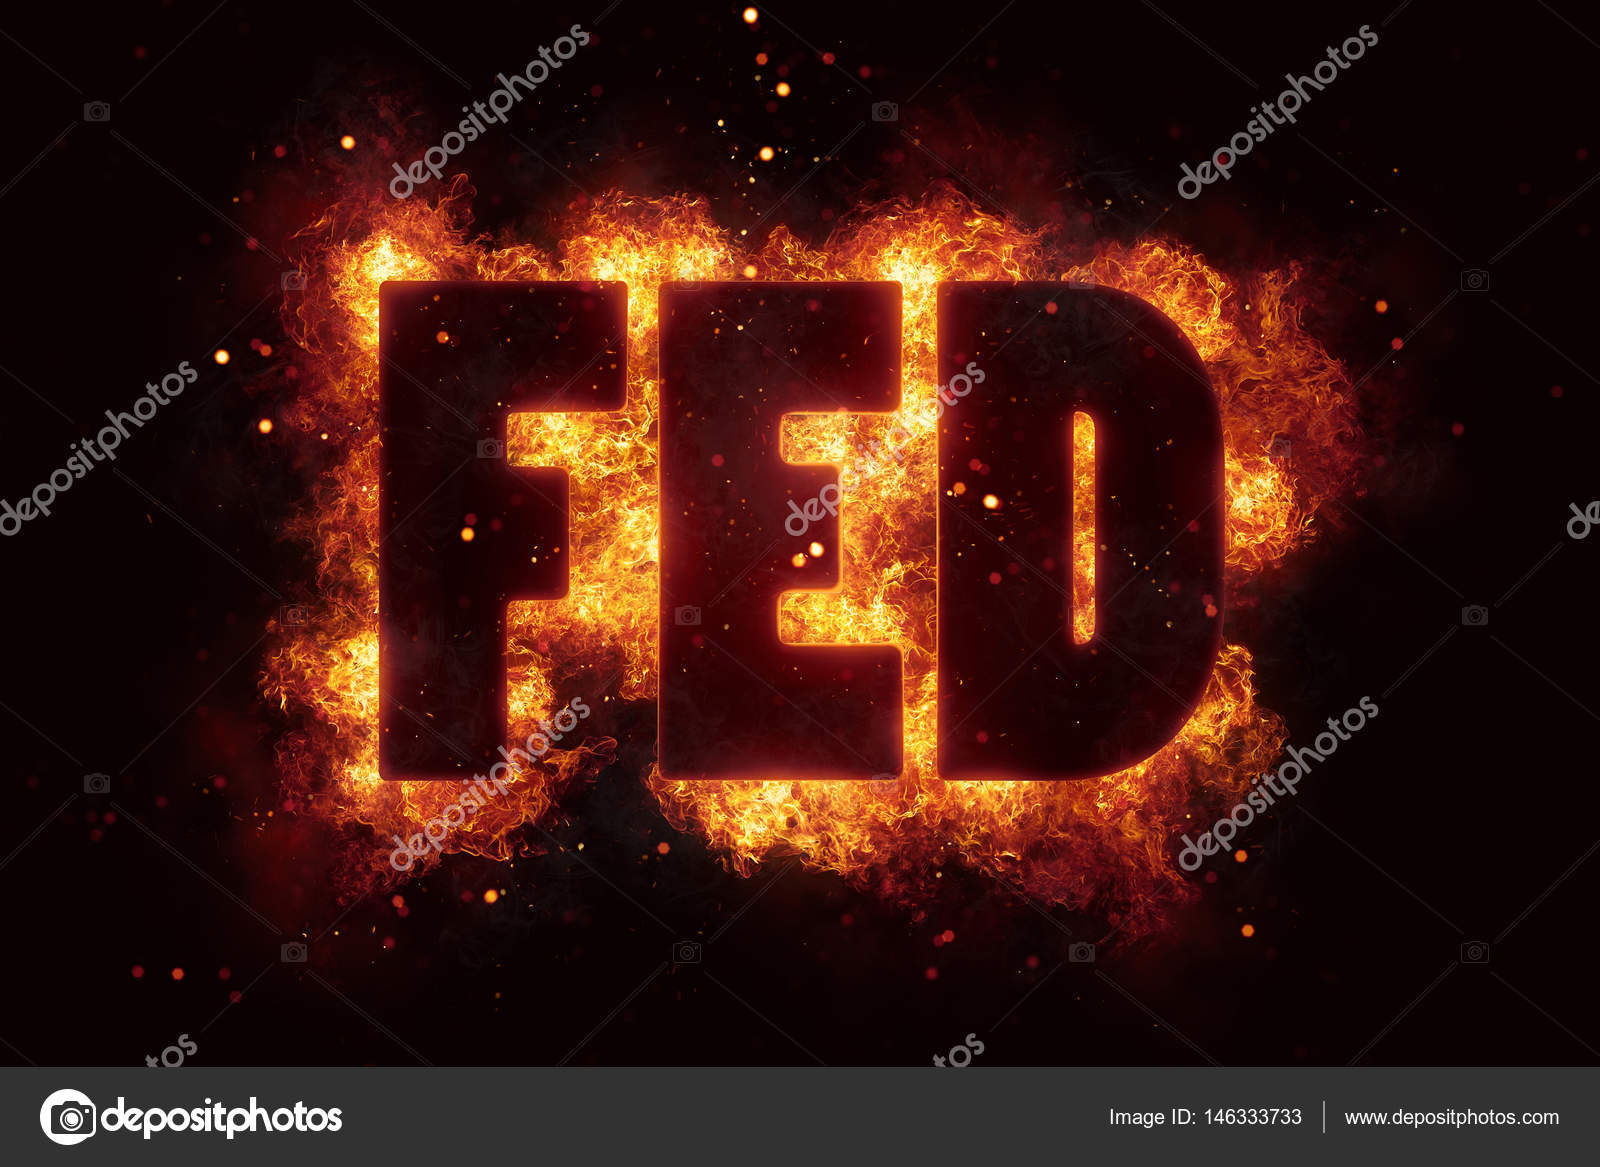 New york fed fire text flame flames burn burning hot explosion new york fed fire text flame flames burn burning hot explosion stock photo buycottarizona